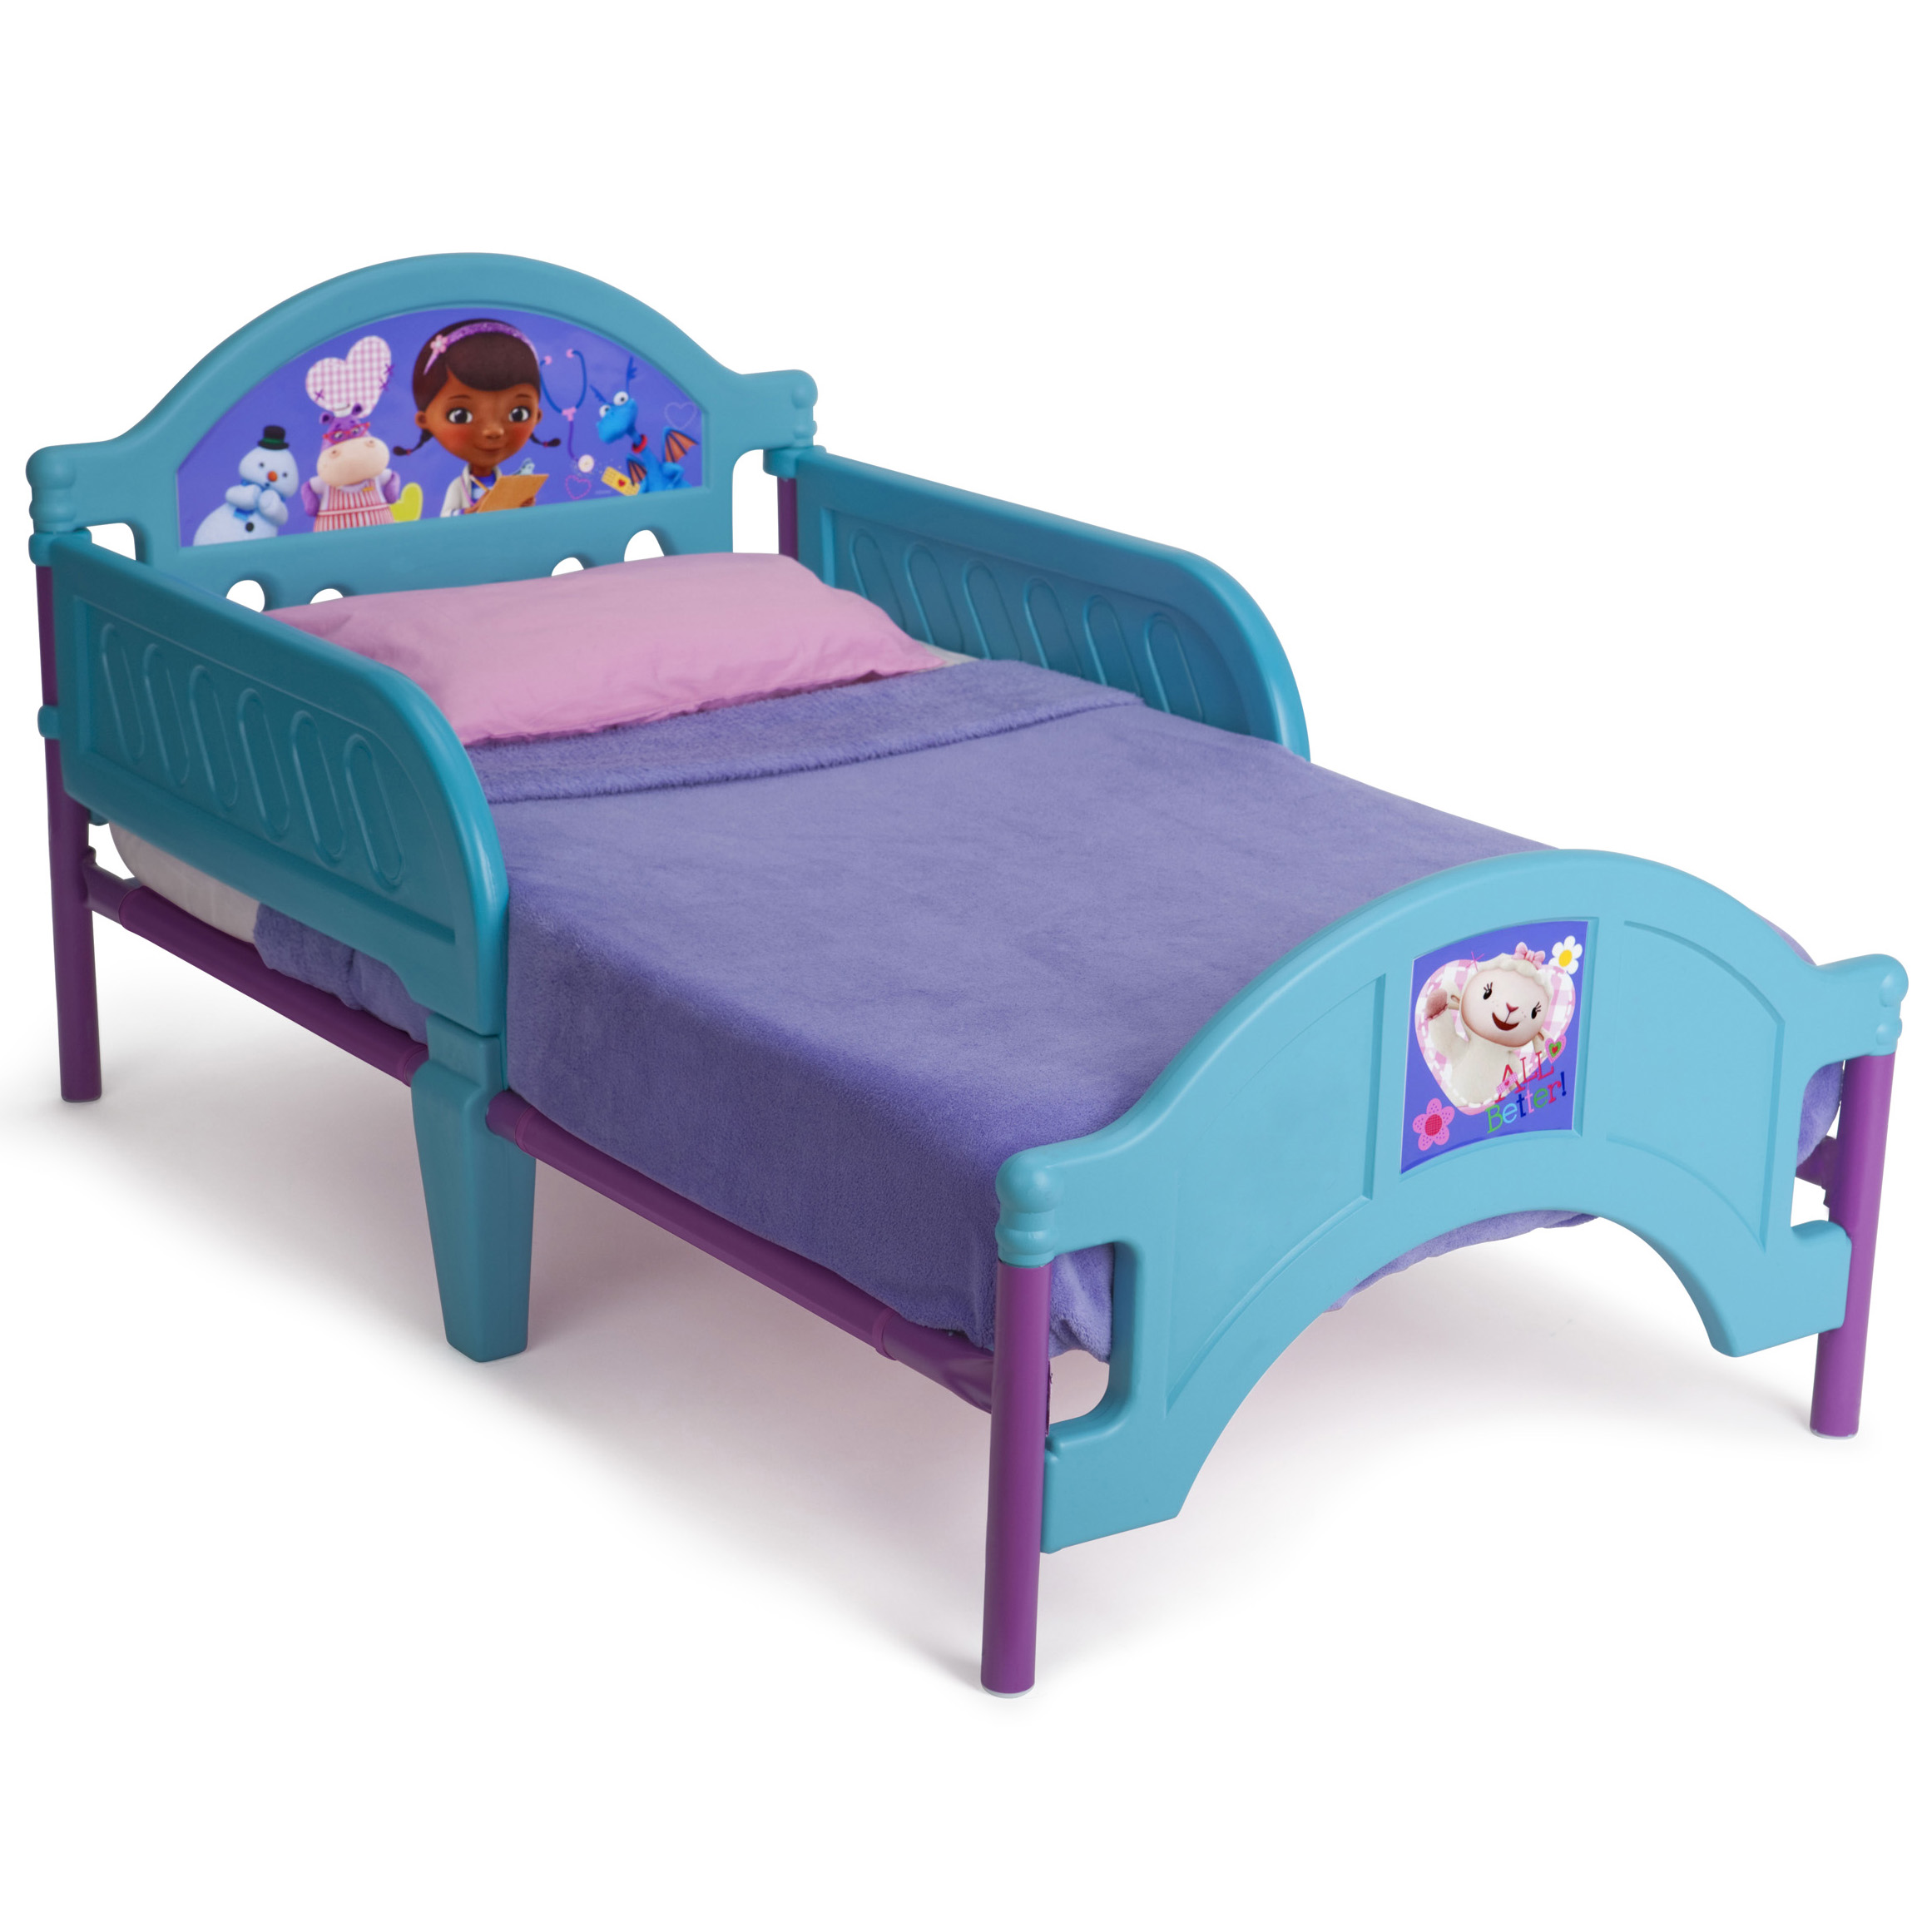 doc mcstuffins erasable activity table and chair set blue modtot high nonconfig